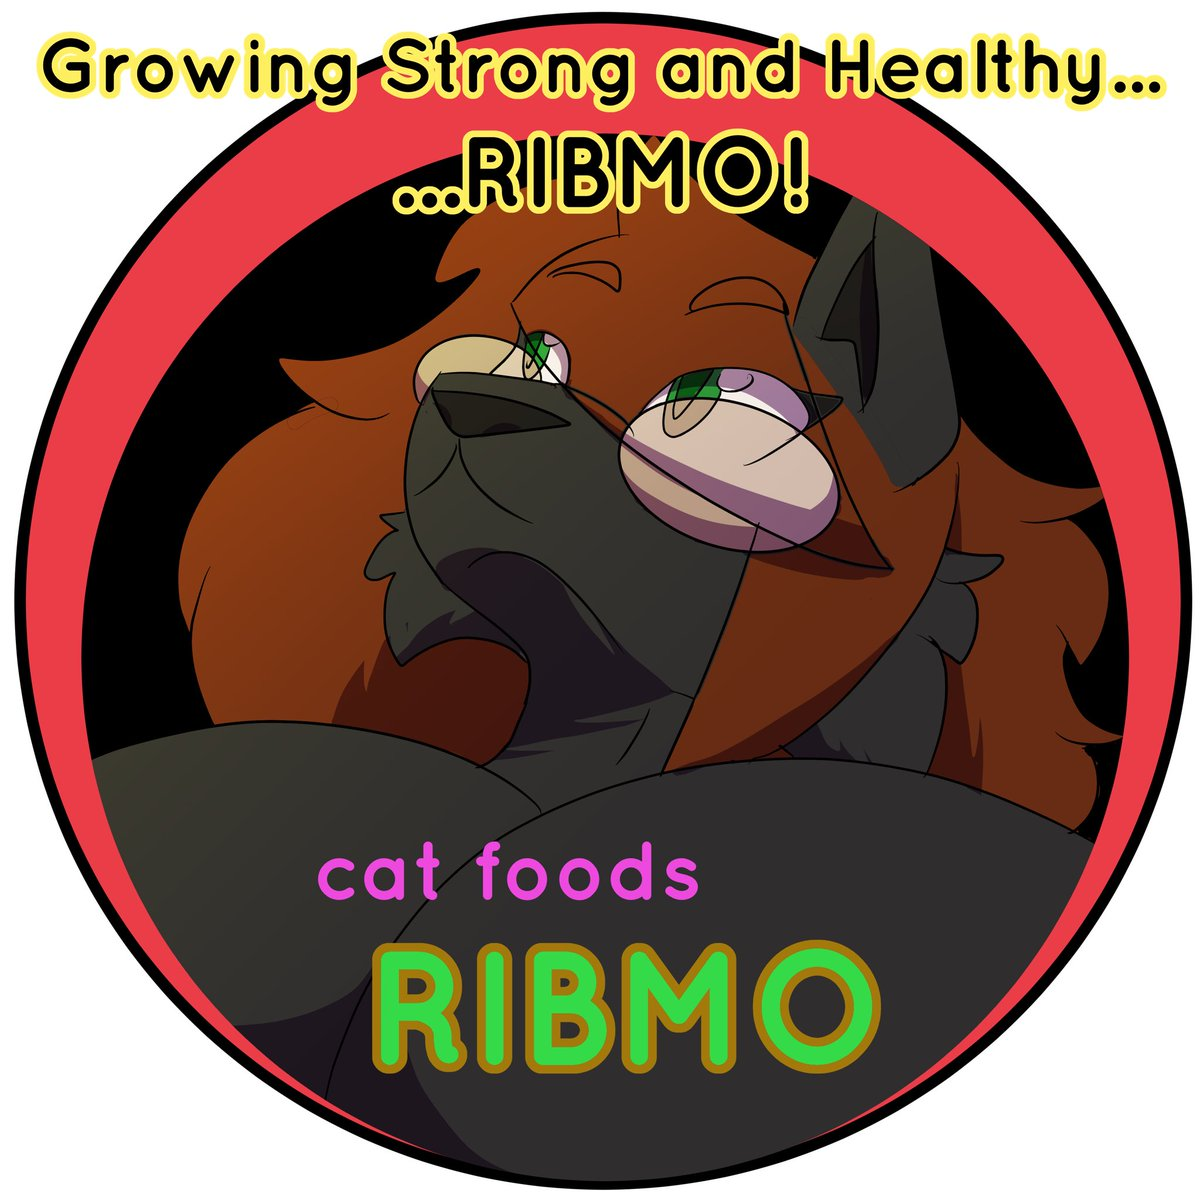 """Ribbons managed to get herself a sponsorship deal.  Now there's a cat food on the market using her likeness!  Warning: Ingestion of """"RIBMO"""" brand cat food might lead to becoming a gray cat with a fondness for pink tassels. pic.twitter.com/ZgVraKnQEJ"""